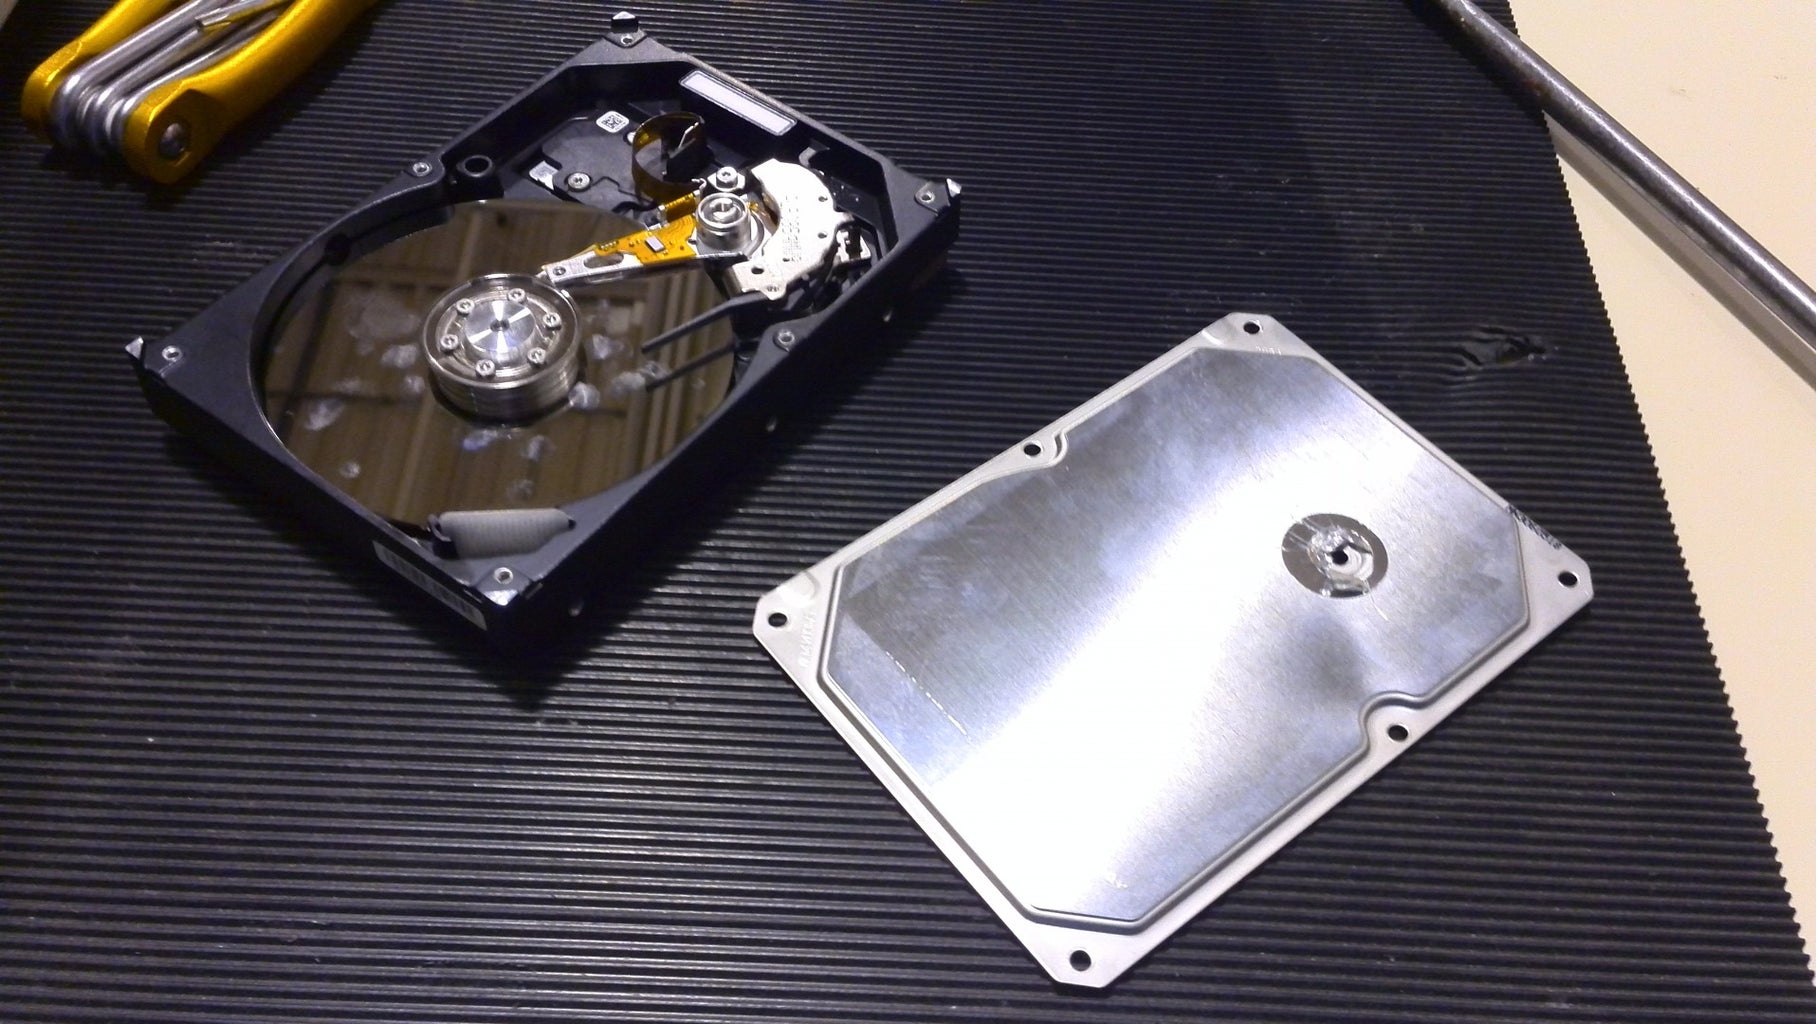 Taking Apart the HDD